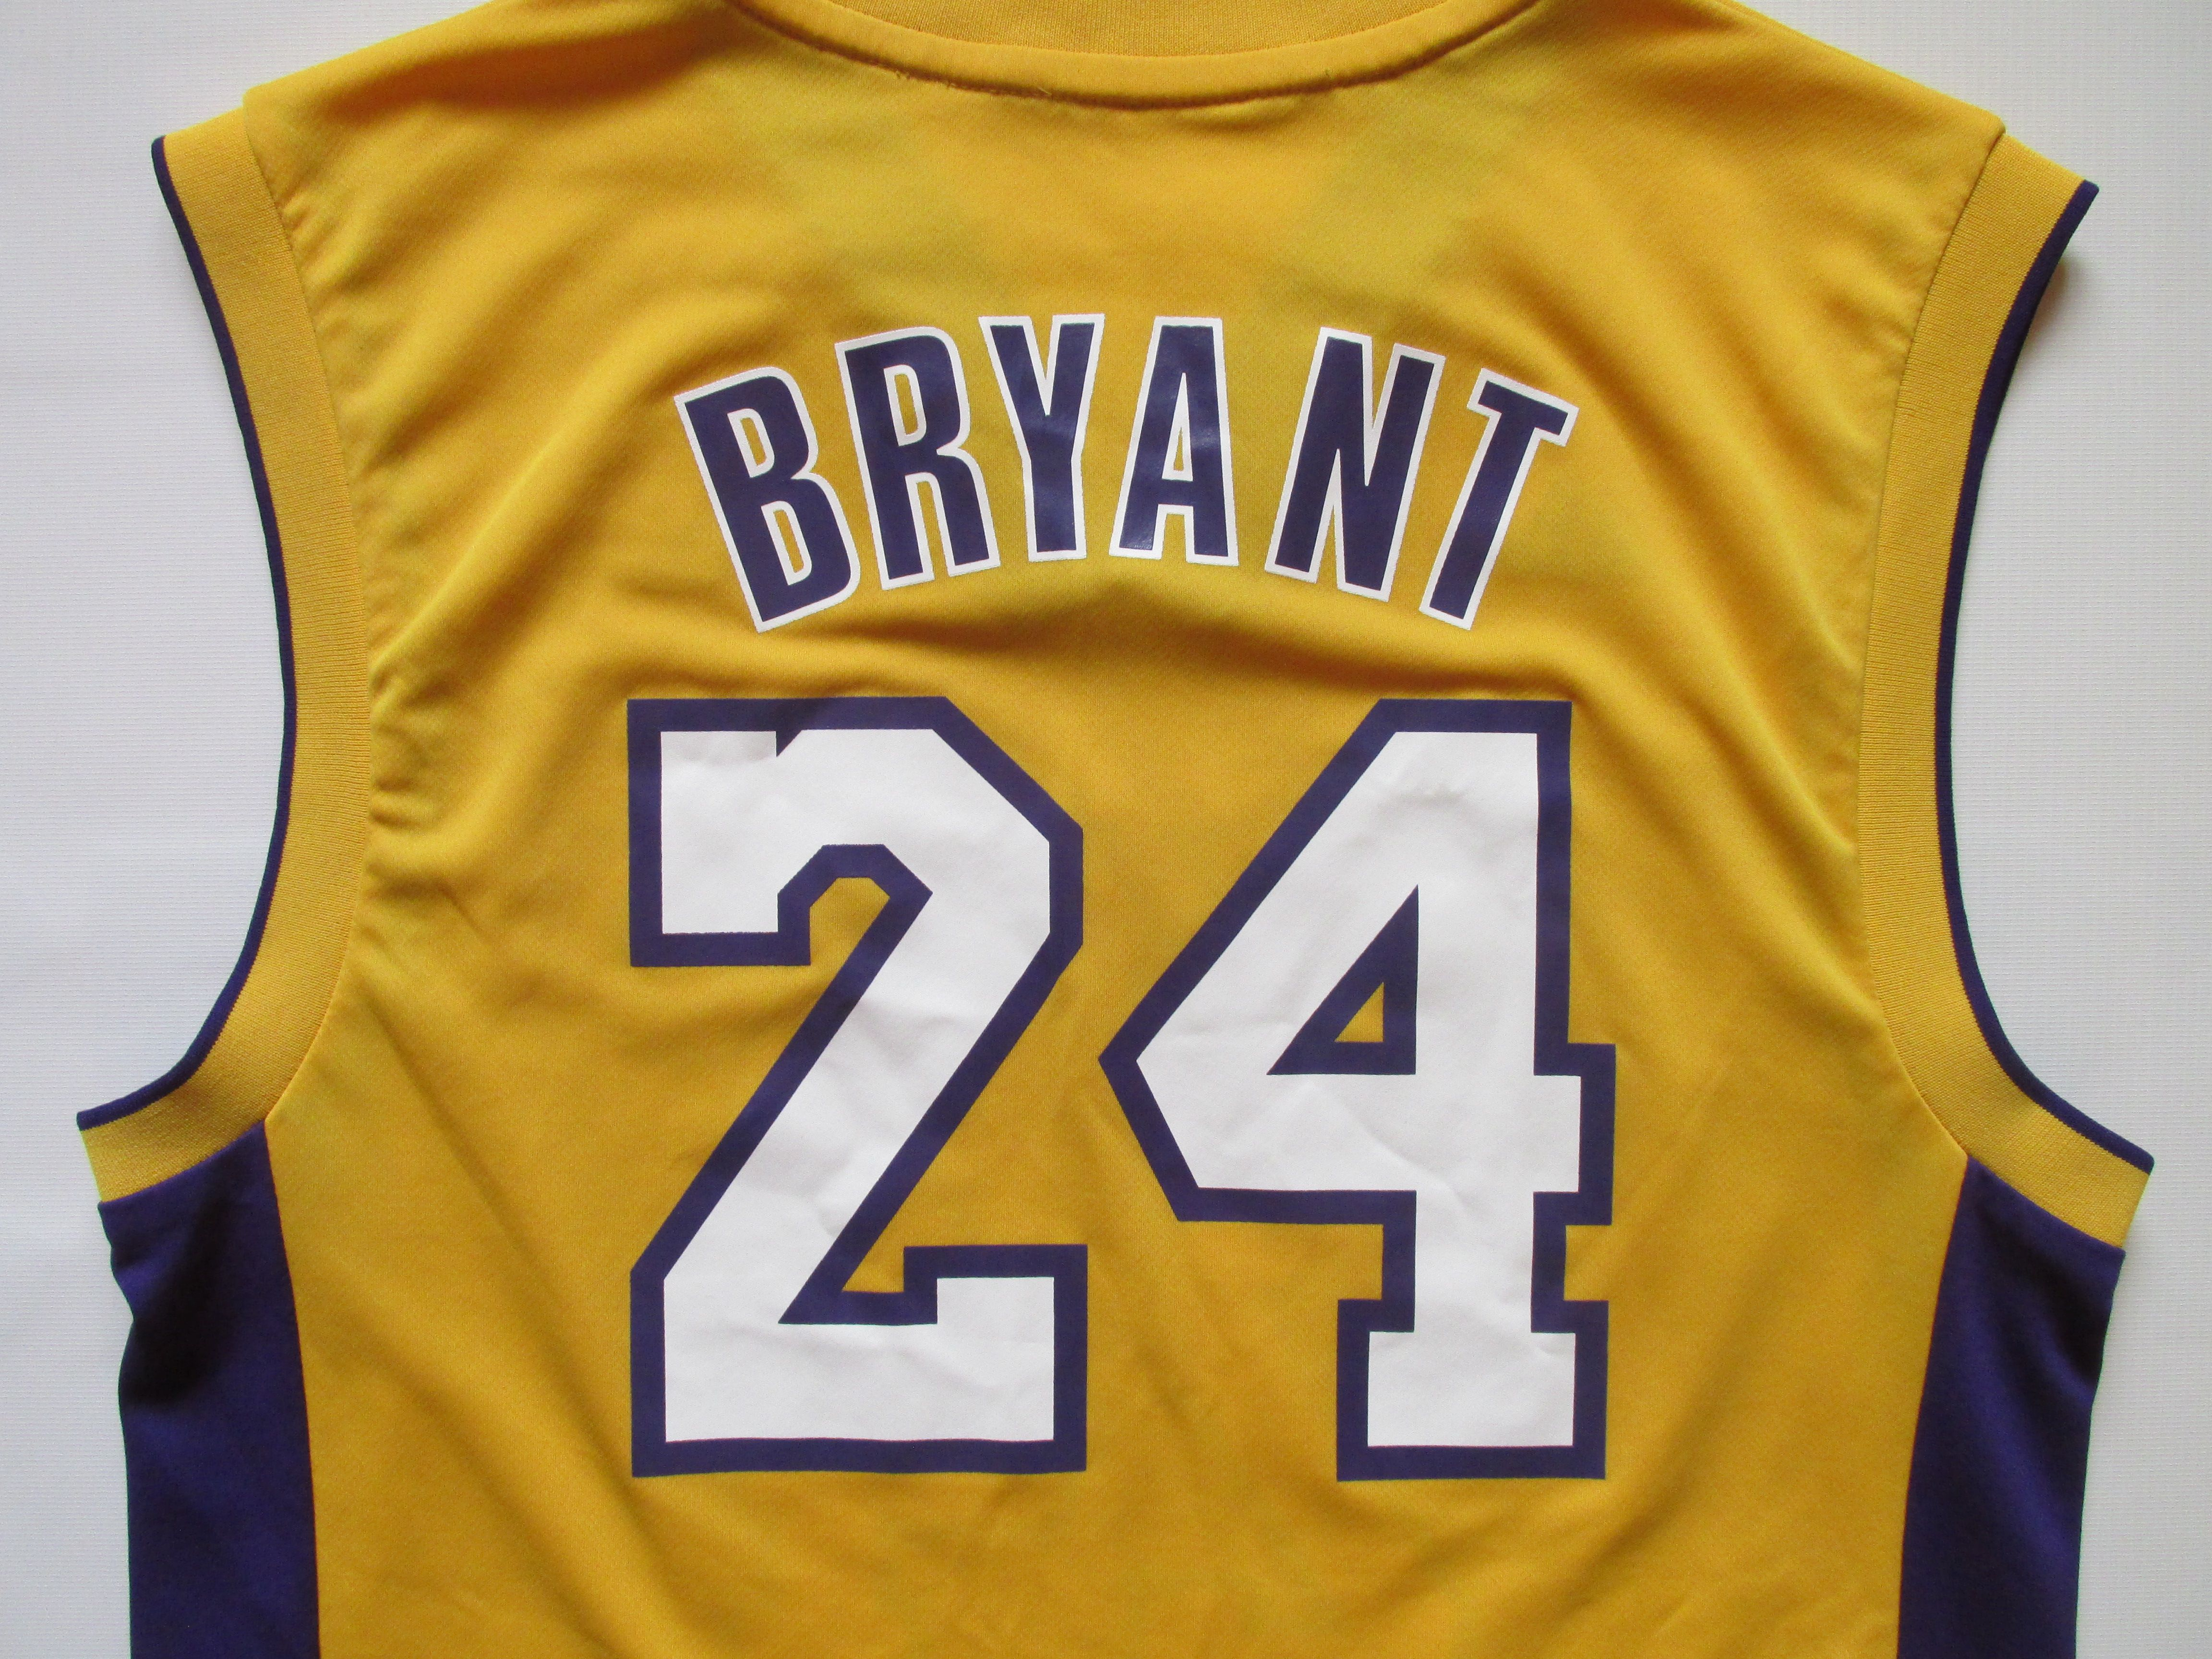 d3e19767f NBA Los Angeles Lakers  24 Kobe Bryant basketball jersey by Adidas  lakers   LA  losangeles  kobe  bryant  nba  jersey  USA  adidas